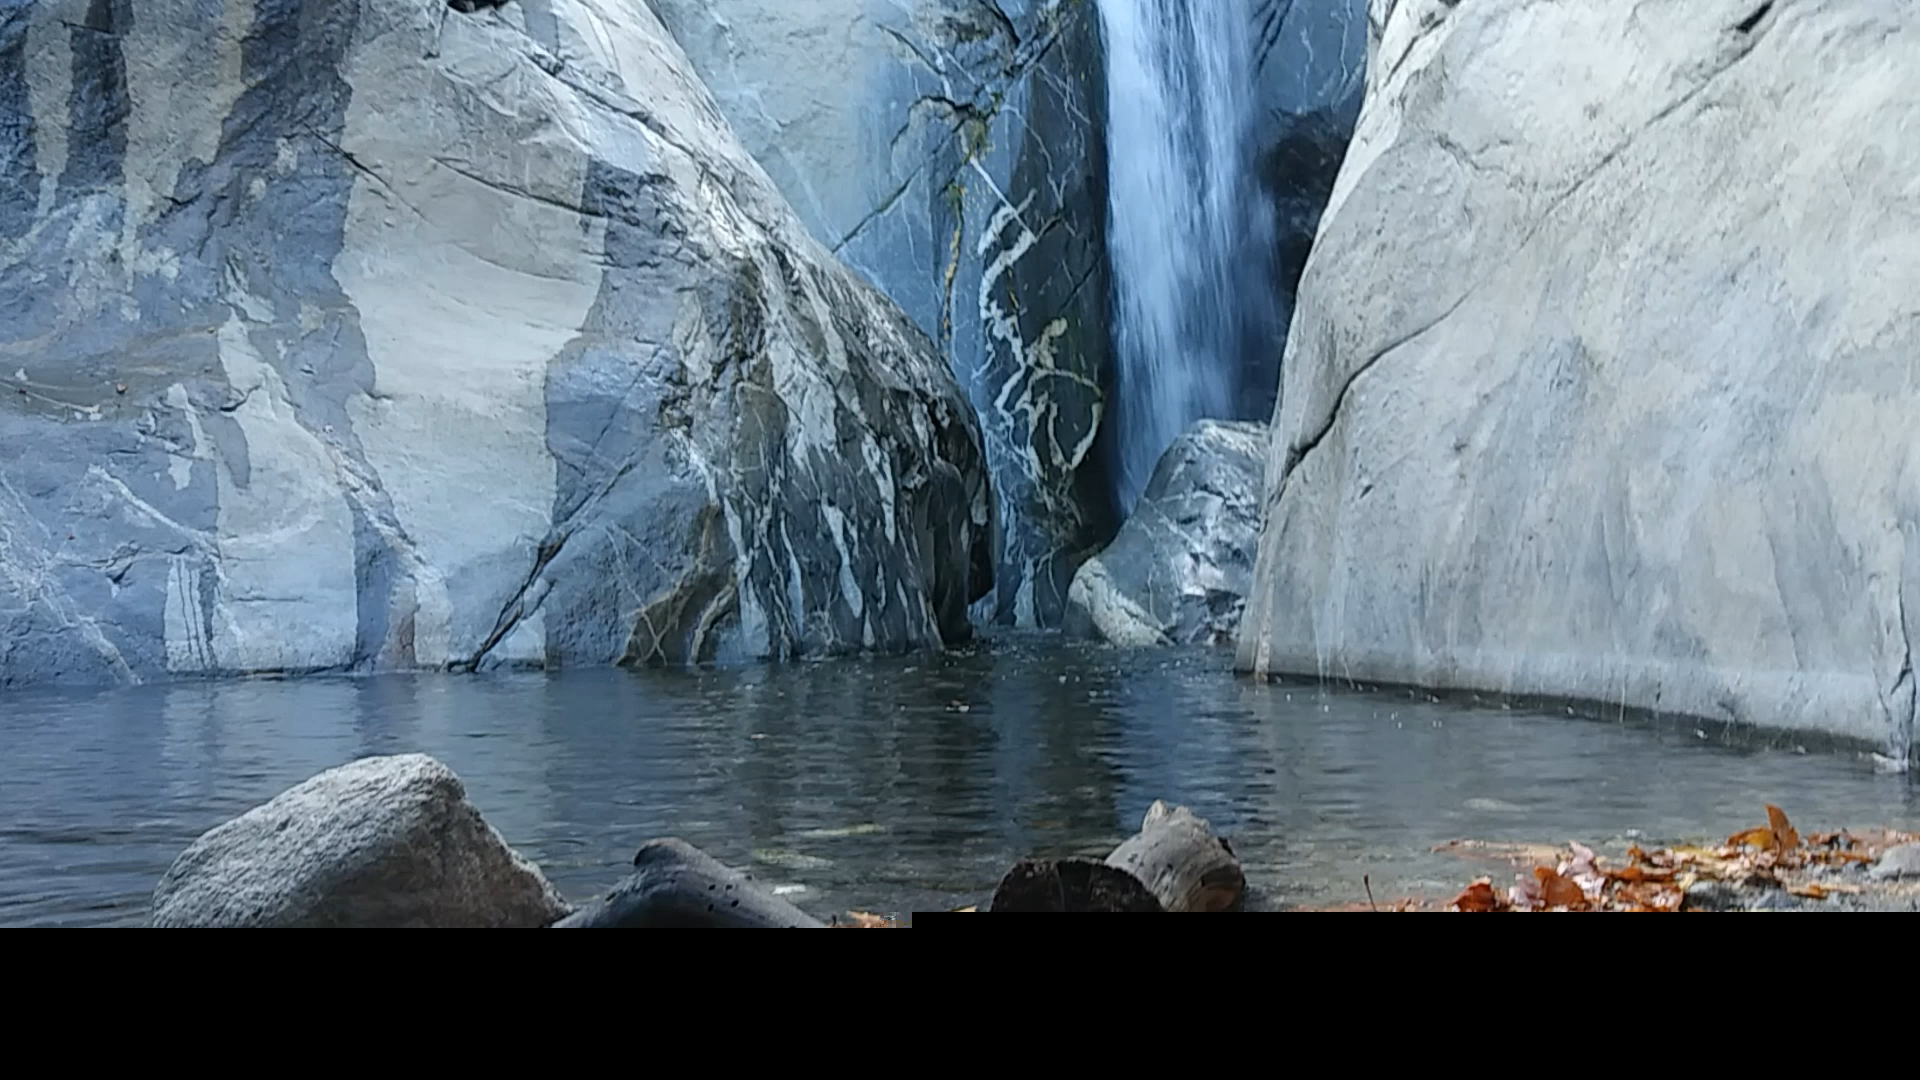 Tahquitz Canyon Trail Waterfall Palm Springs